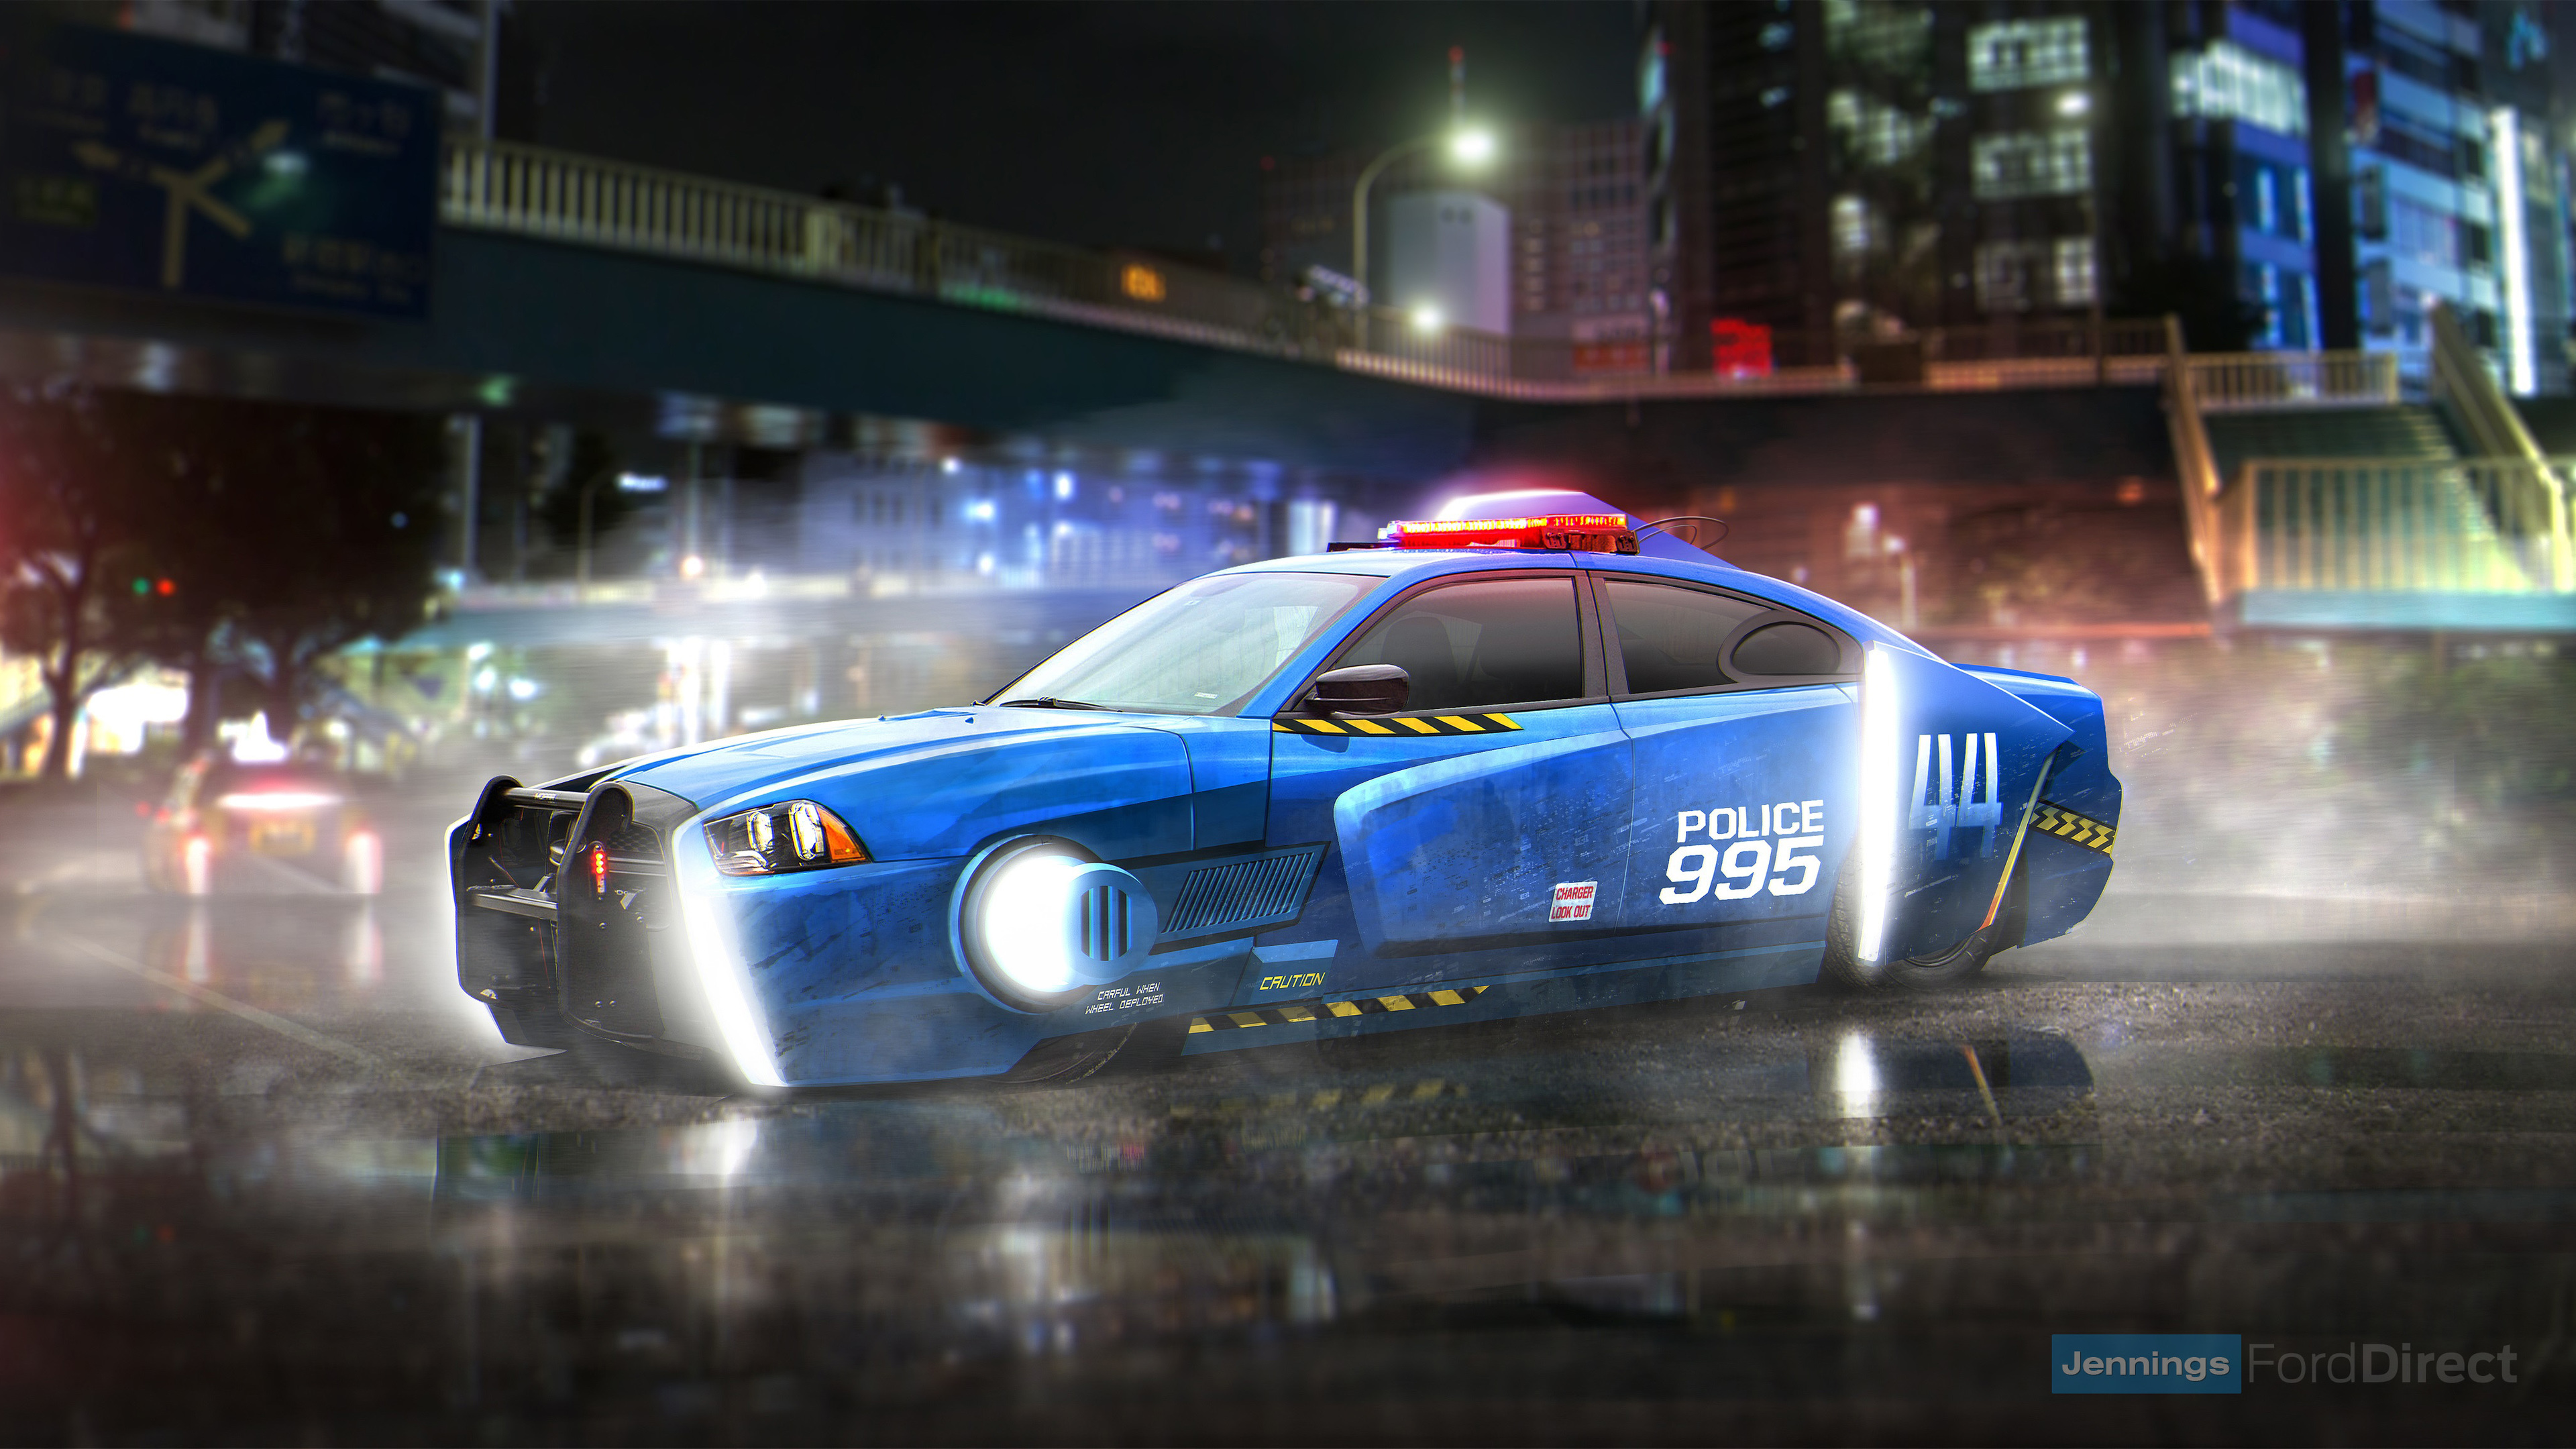 blade runner spinner dodge charger police car 1539105873 - Blade Runner Spinner Dodge Charger Police Car - police wallpapers, movies wallpapers, hd-wallpapers, harley davidson wallpapers, digital art wallpapers, cars wallpapers, blade runner 2049 wallpapers, bikes wallpapers, artwork wallpapers, artist wallpapers, 4k-wallpapers, 2017 movies wallpapers